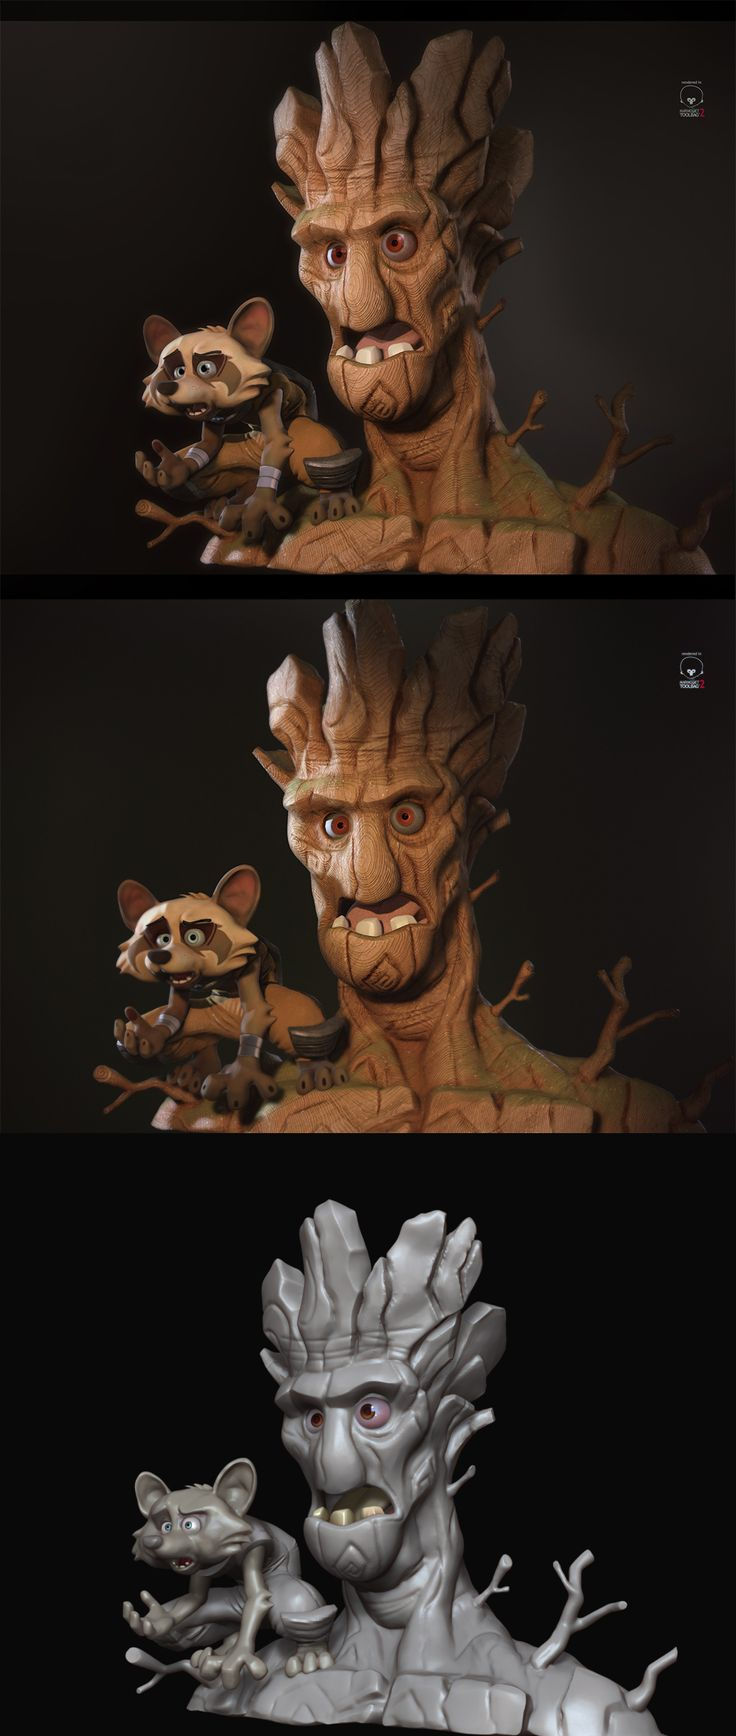 Rocket and Groot by Antone Magdy